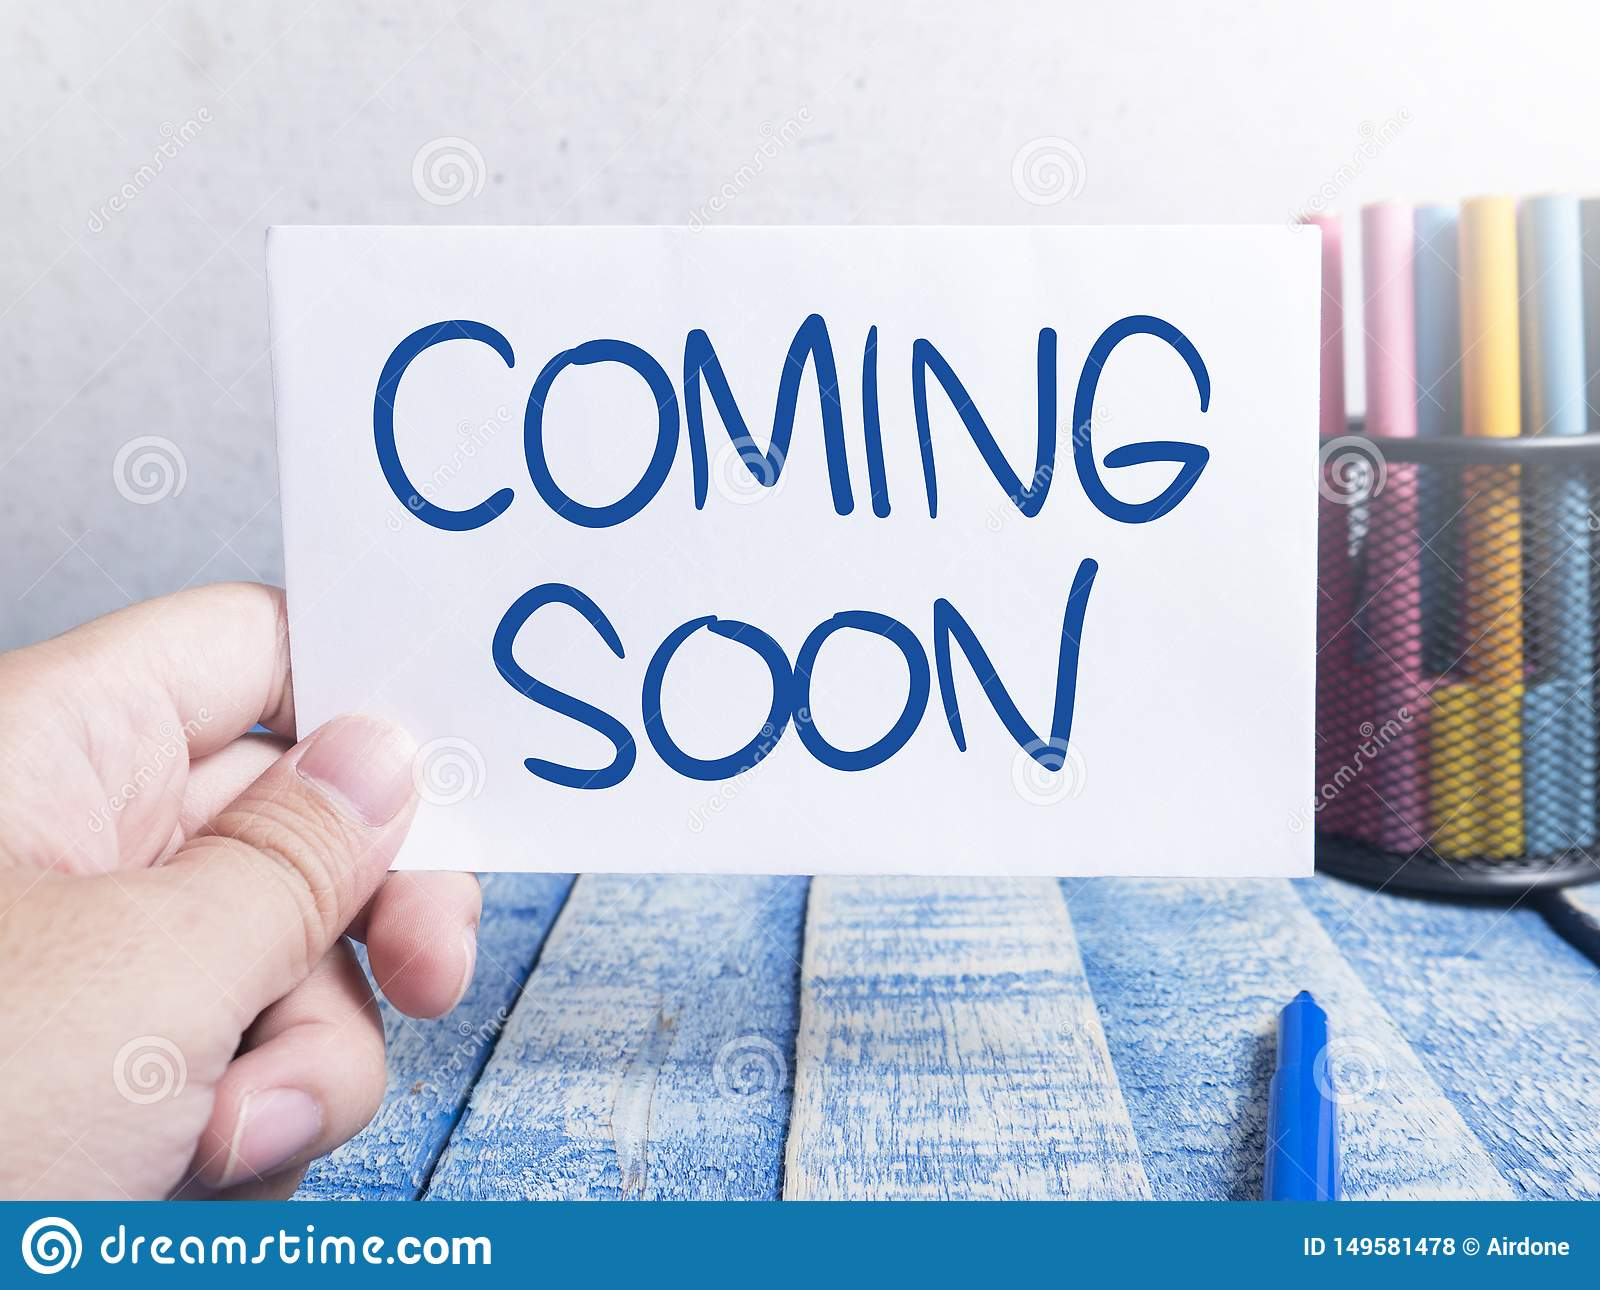 Coming Soon Words Typography Concept Stock Photo Image Of Arrival Anticipated 149581478